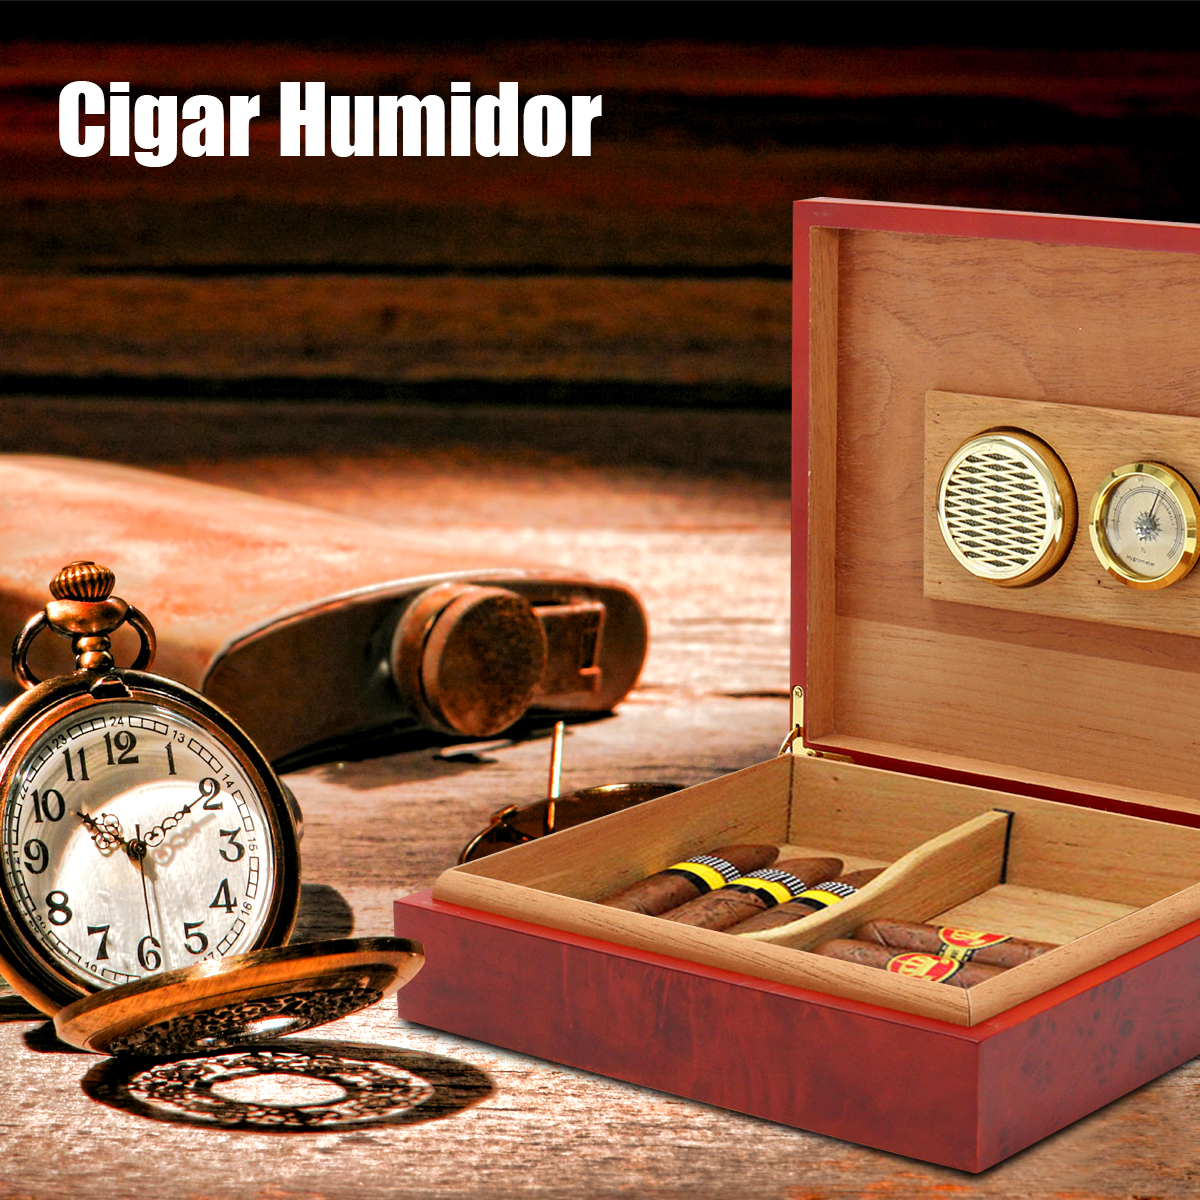 NEW Cigar Humidor Humidifier Cedar Wood Lined Cigar Case With Hygrometer Case Box with Moisture Meter Moisturizing DeviceNEW Cigar Humidor Humidifier Cedar Wood Lined Cigar Case With Hygrometer Case Box with Moisture Meter Moisturizing Device